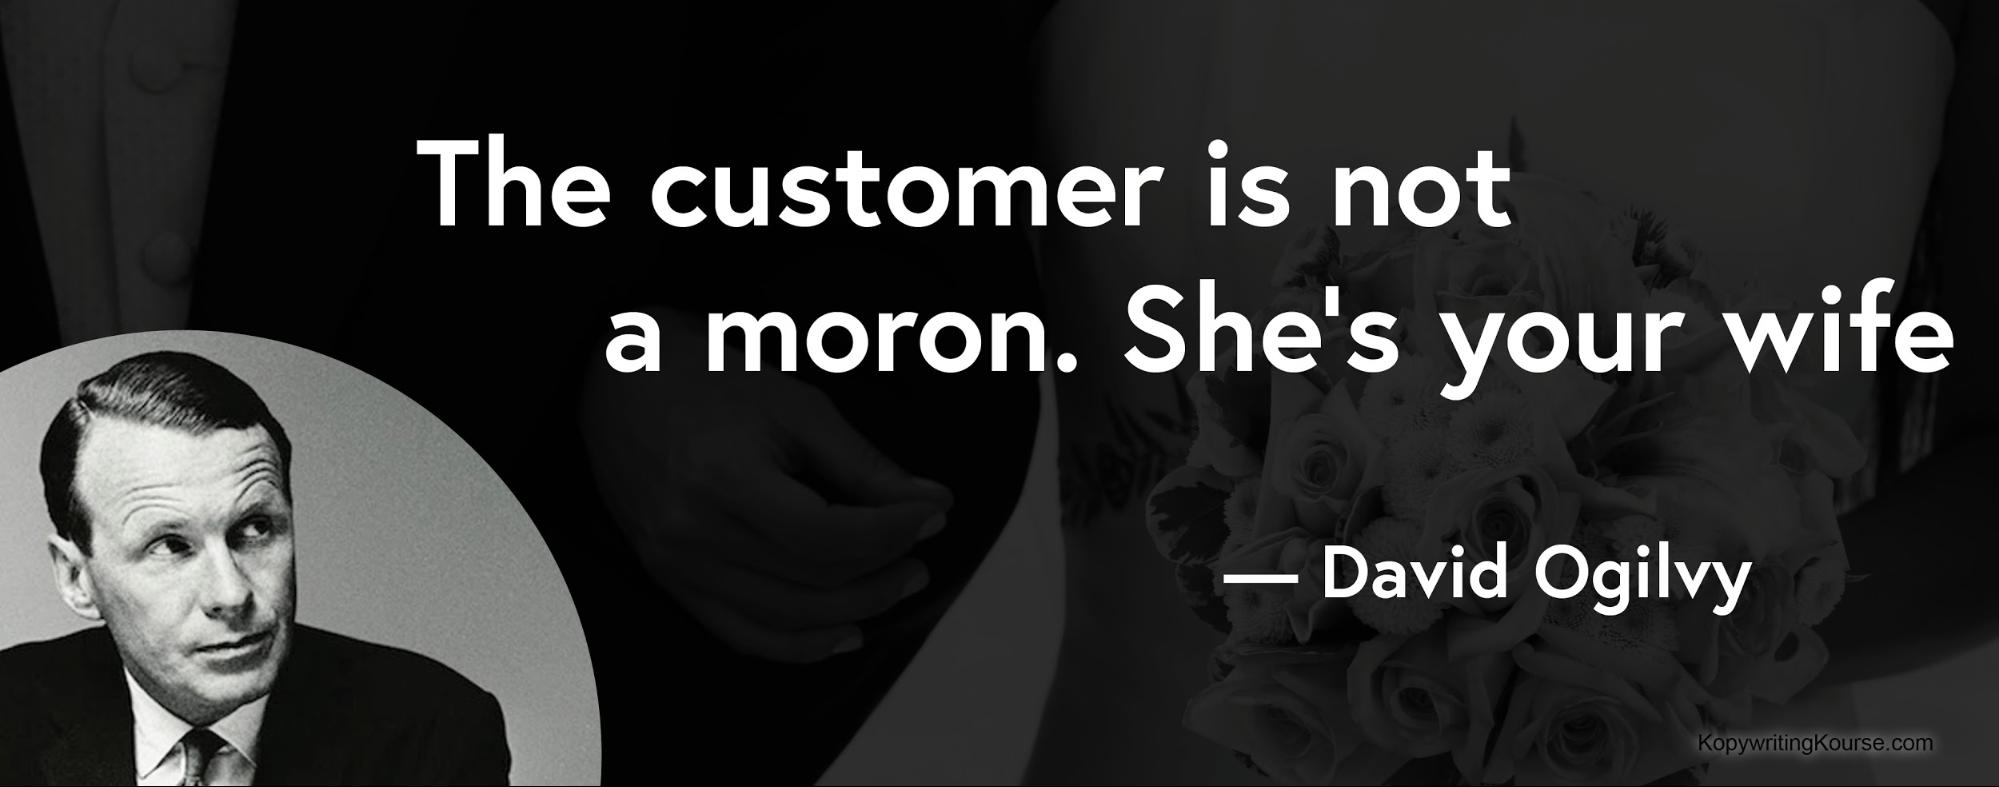 David Ogilvy Quote the customer is not a moron she's your wife